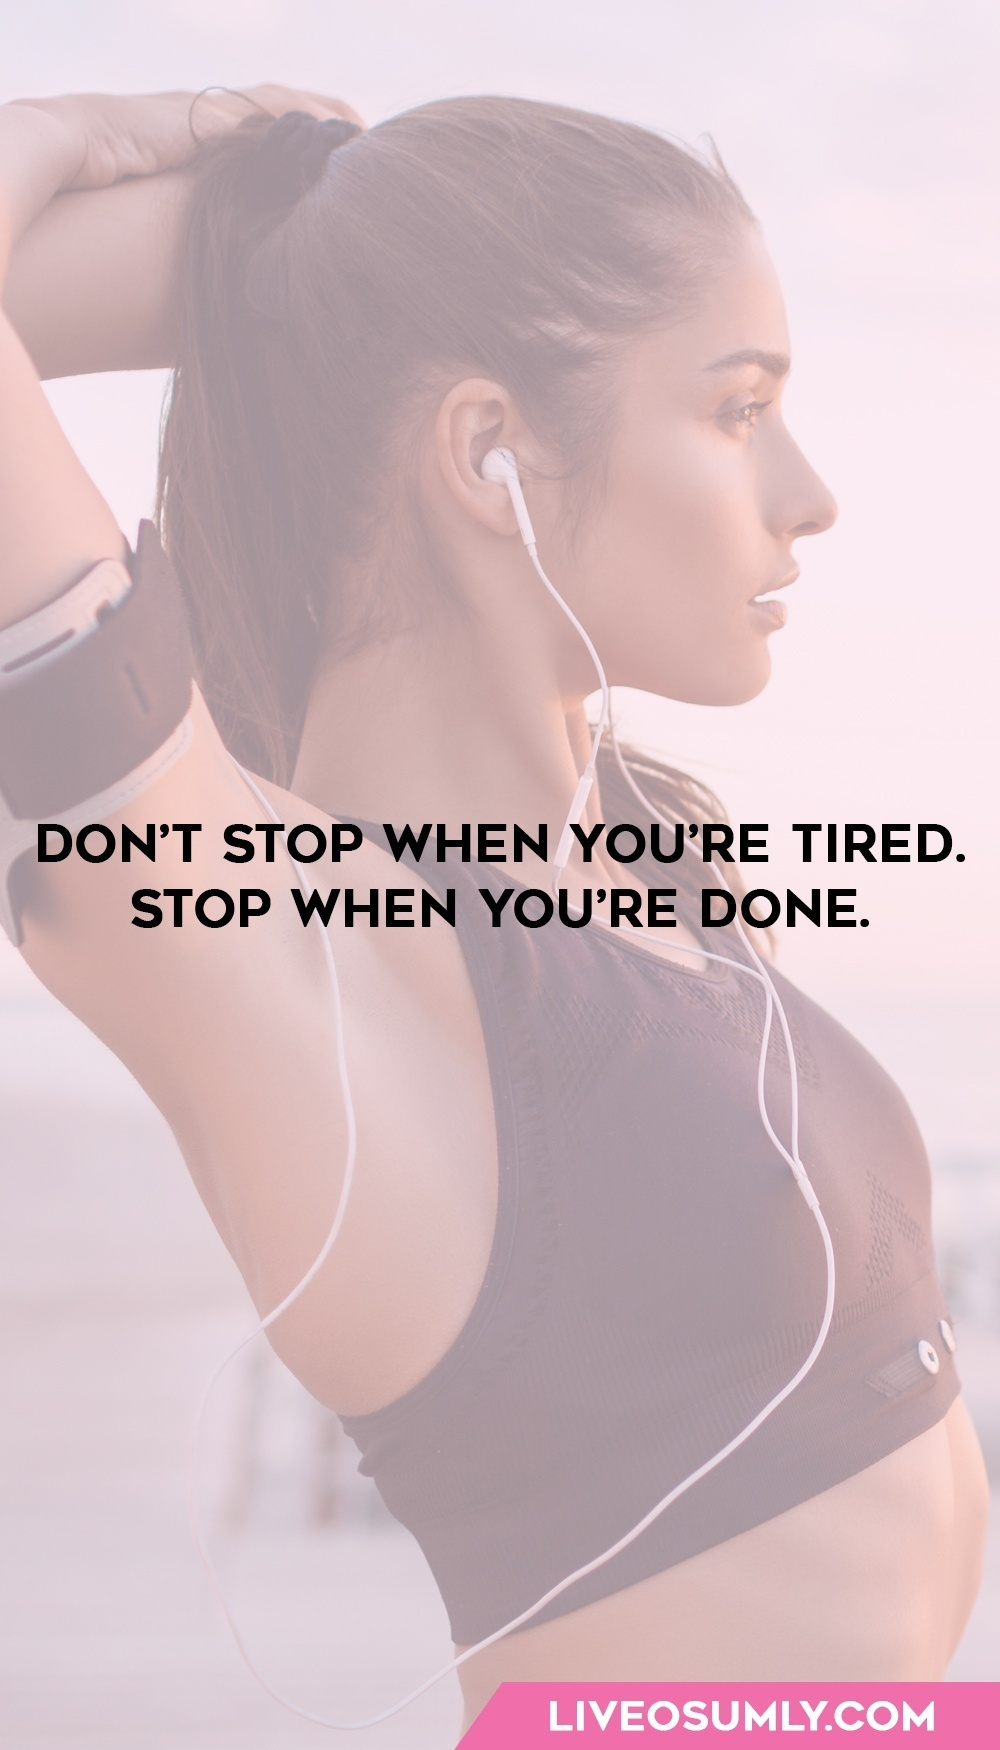 38. Best Fitness Motivational Quotes